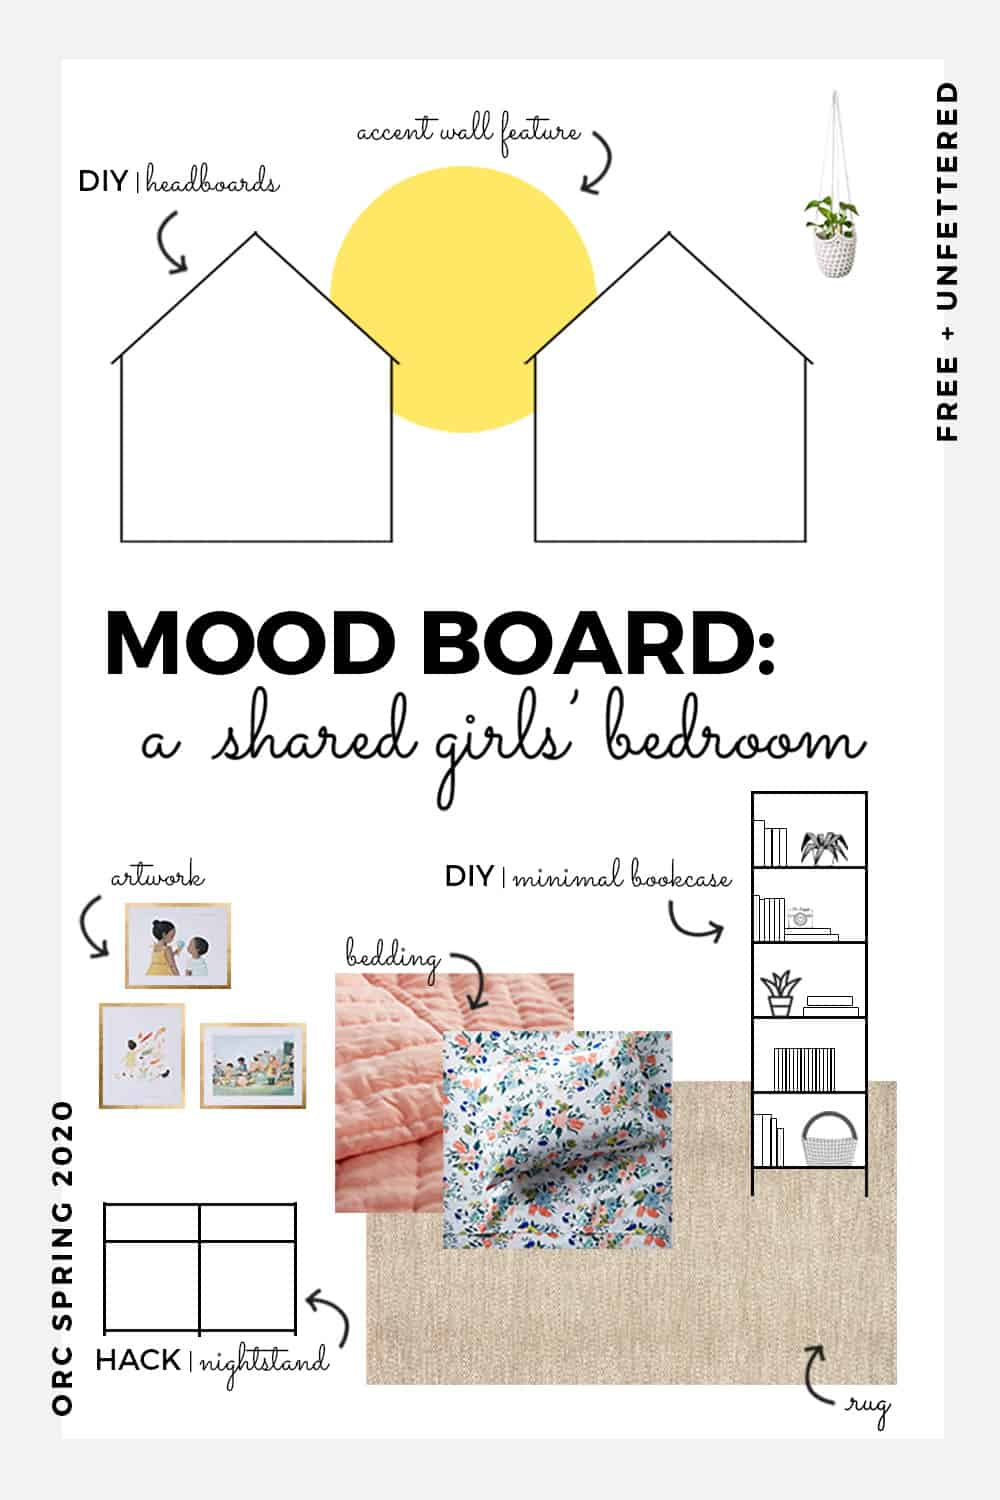 Check out our Montessori-friendly shared children's bedroom makeover as part of the Spring 2020 One Room Challenge! #orc #designingwithkids #kidsbedroom #childfriendlydesign